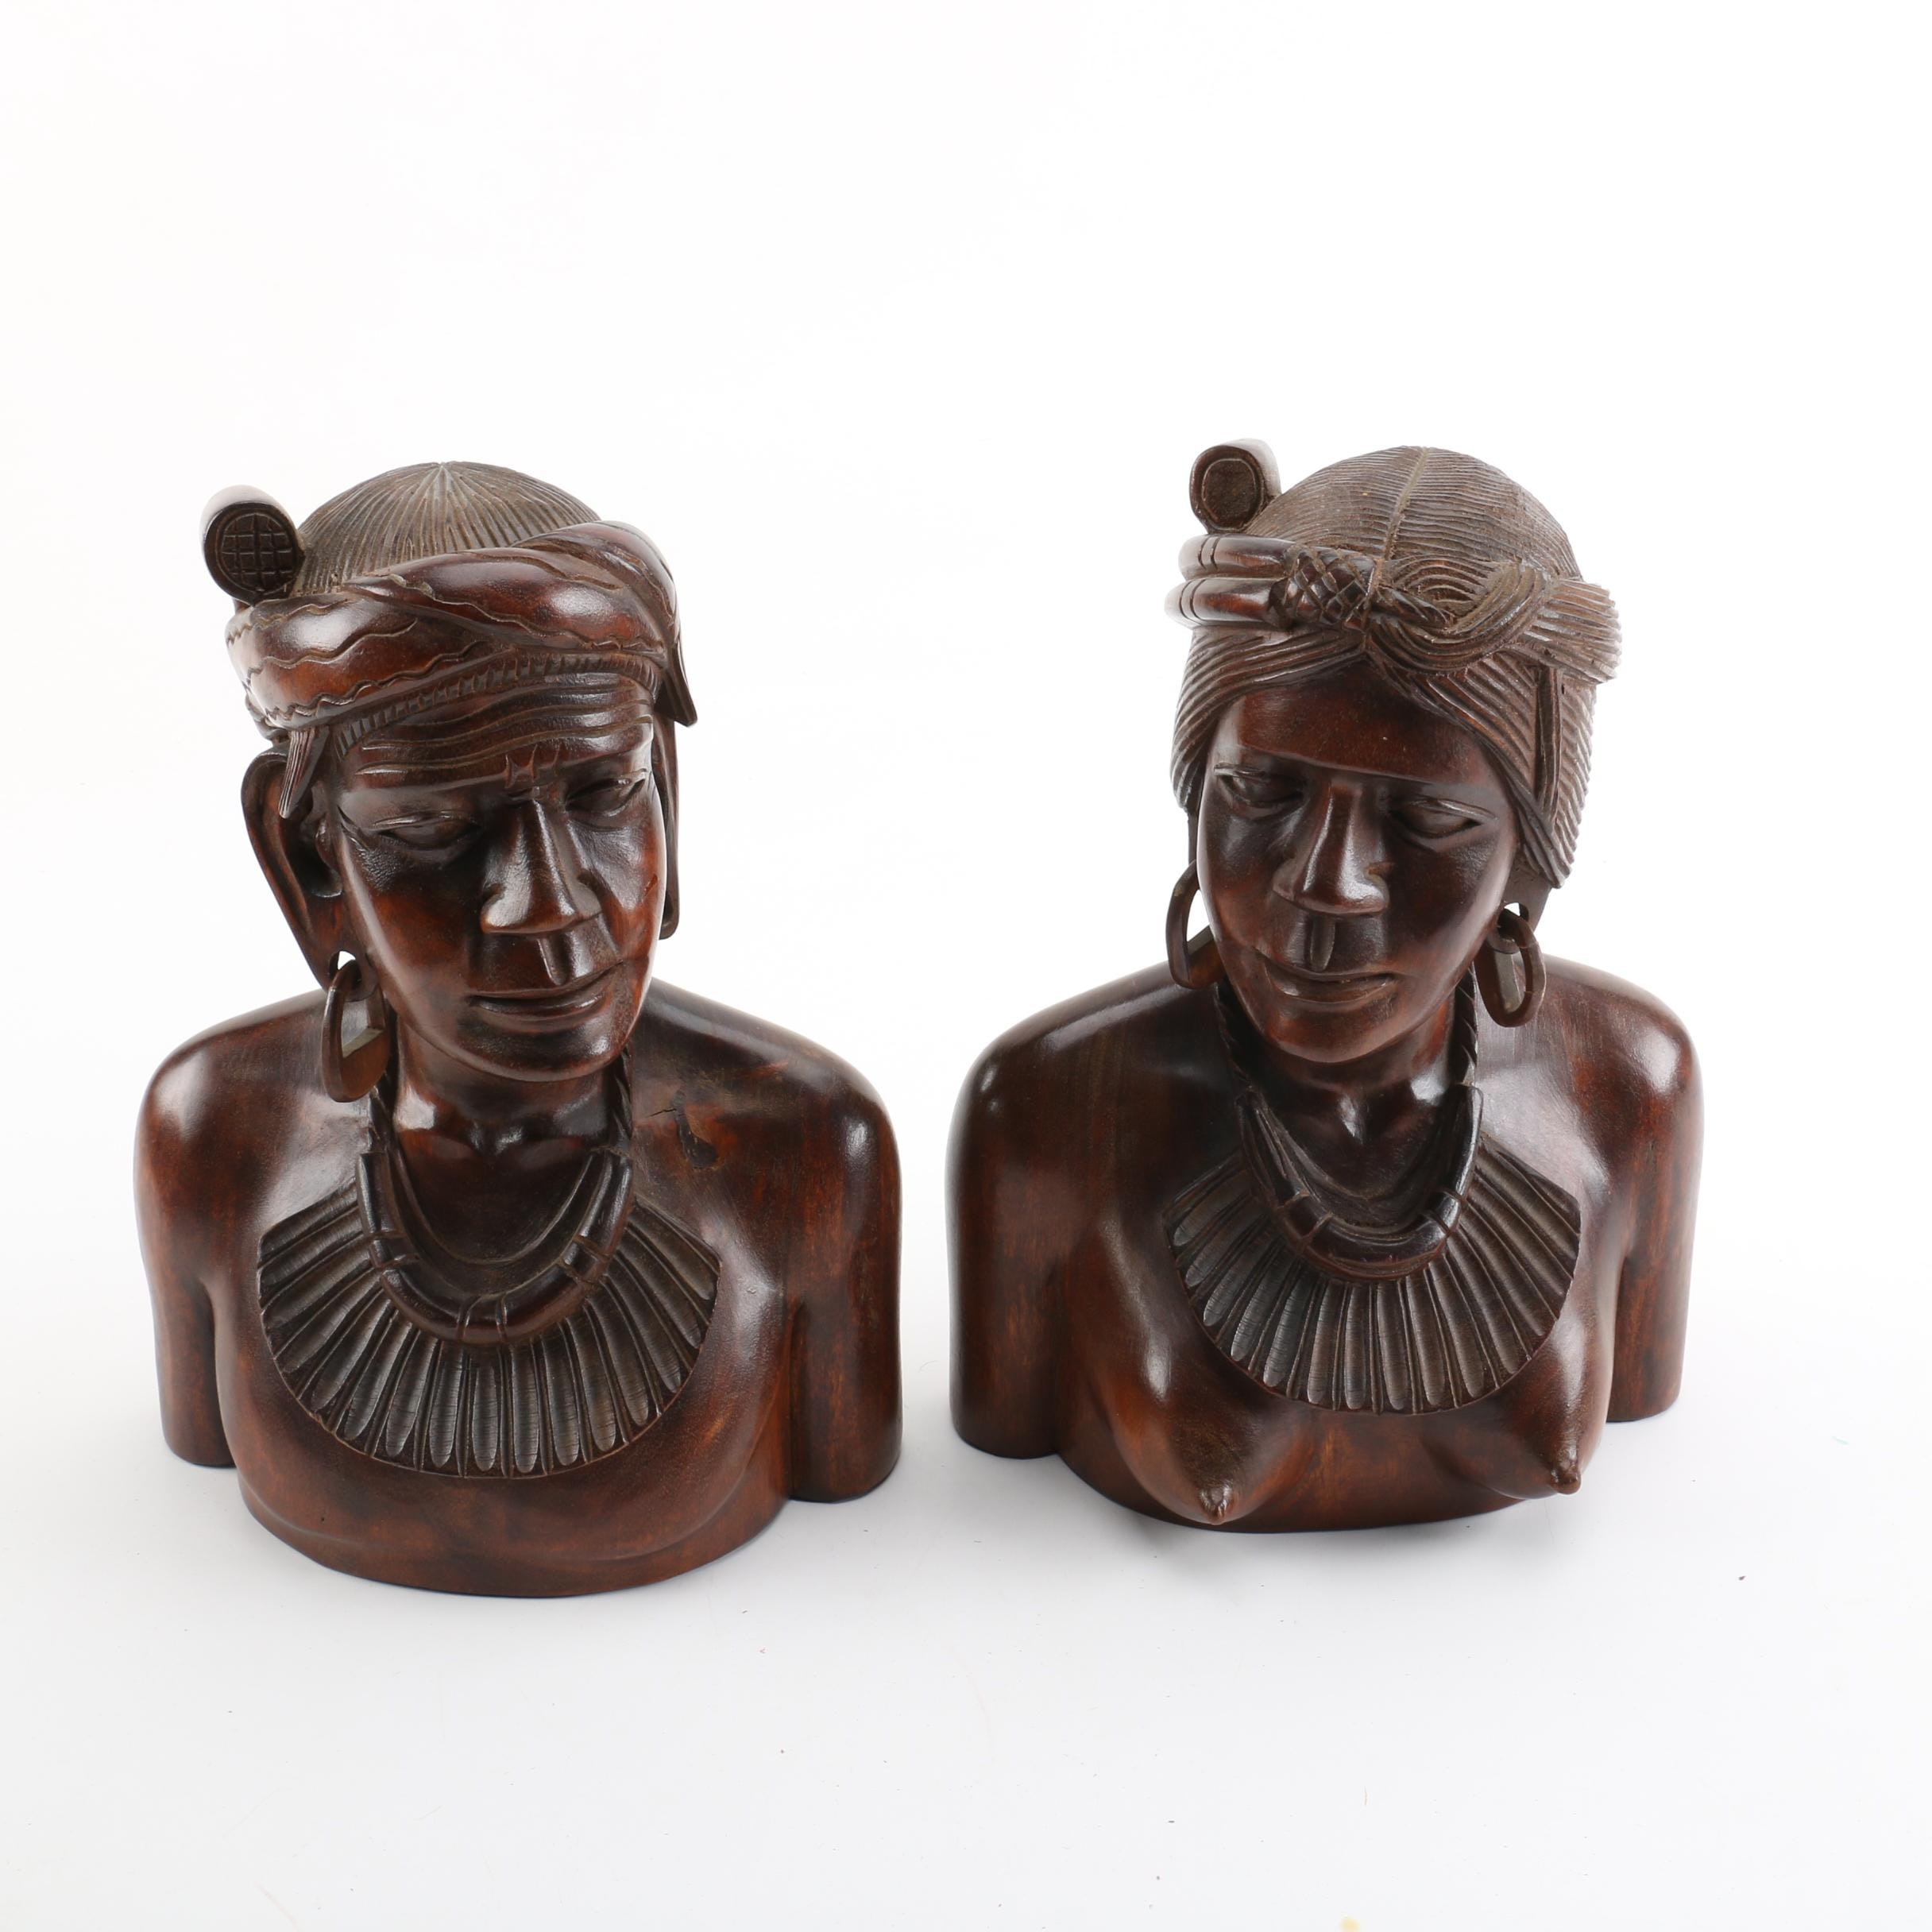 Balinese Carved Wood Busts